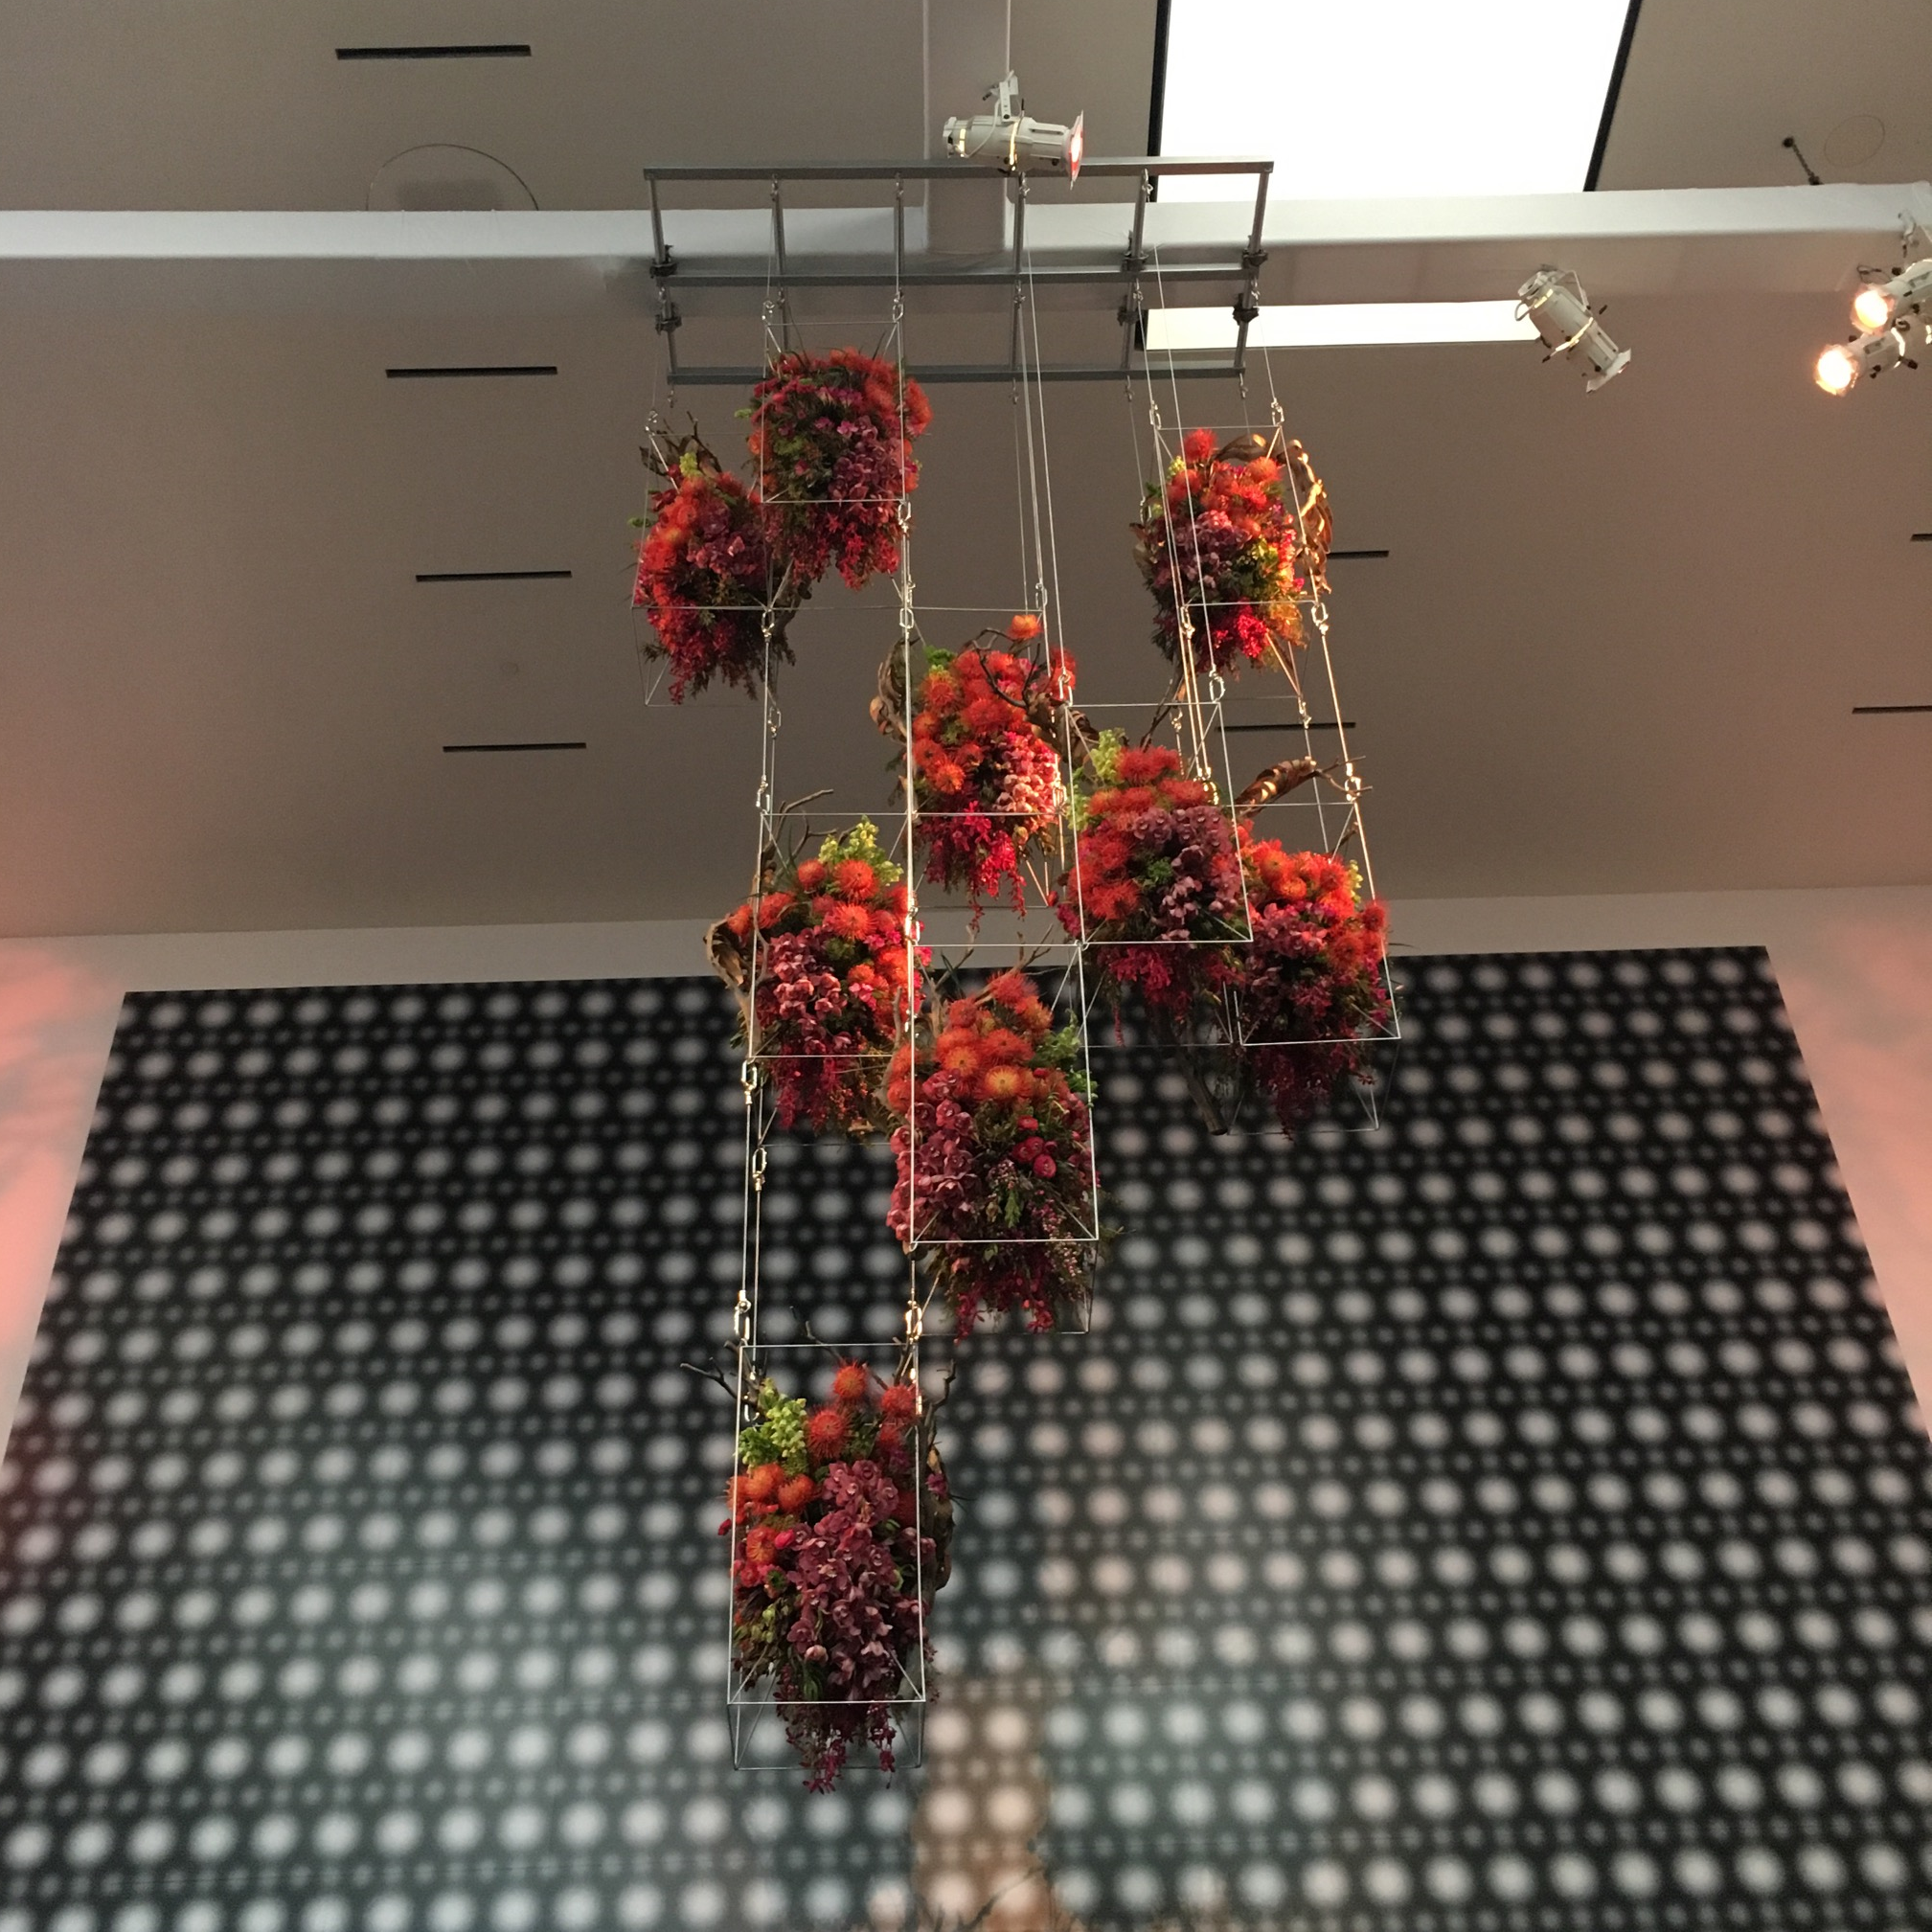 """The hanging sculpture of plants in the """"lobby"""" of the museum. I found the artist, Patricia Gillespie,on Instagram and really enjoyed seeing the progress photos she shared of this piece. She has done hanging arrangements before, and after discovering her work, I've added this career to my list of dream jobs. (Her Instagram feed is  here .)"""